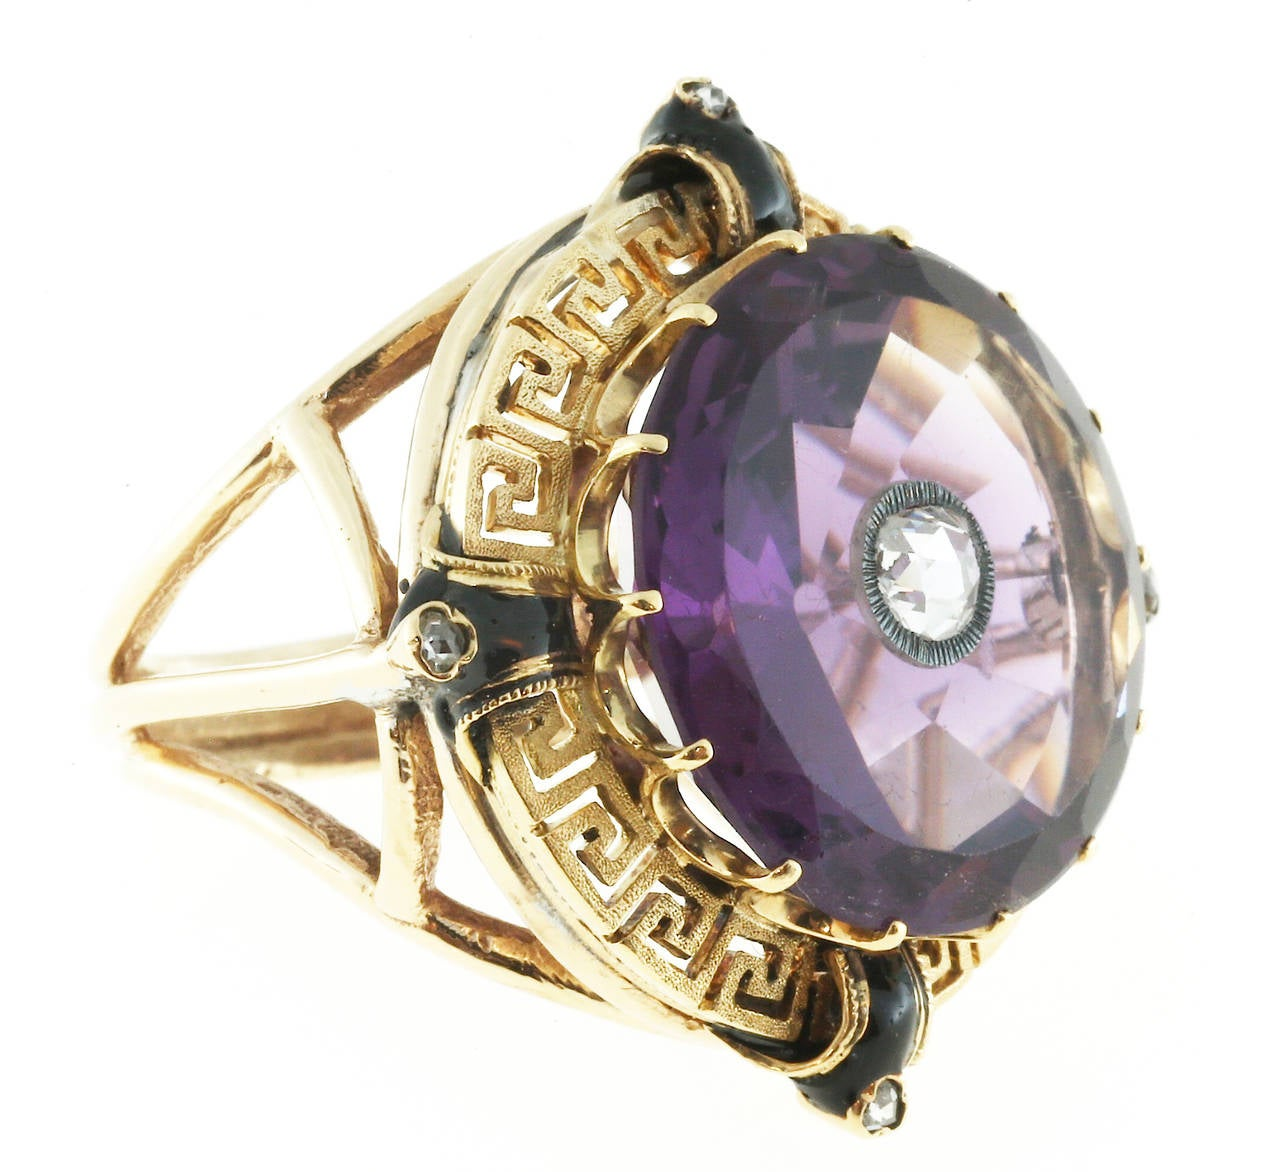 Handmade ring circa 1930-1940 with genuine flat top round Amethyst with faceted crown and pavilion. The center of the Amethyst has a silver tube and is set with a rose cut diamond. Black enamel accents are at North, South, East and West and a small